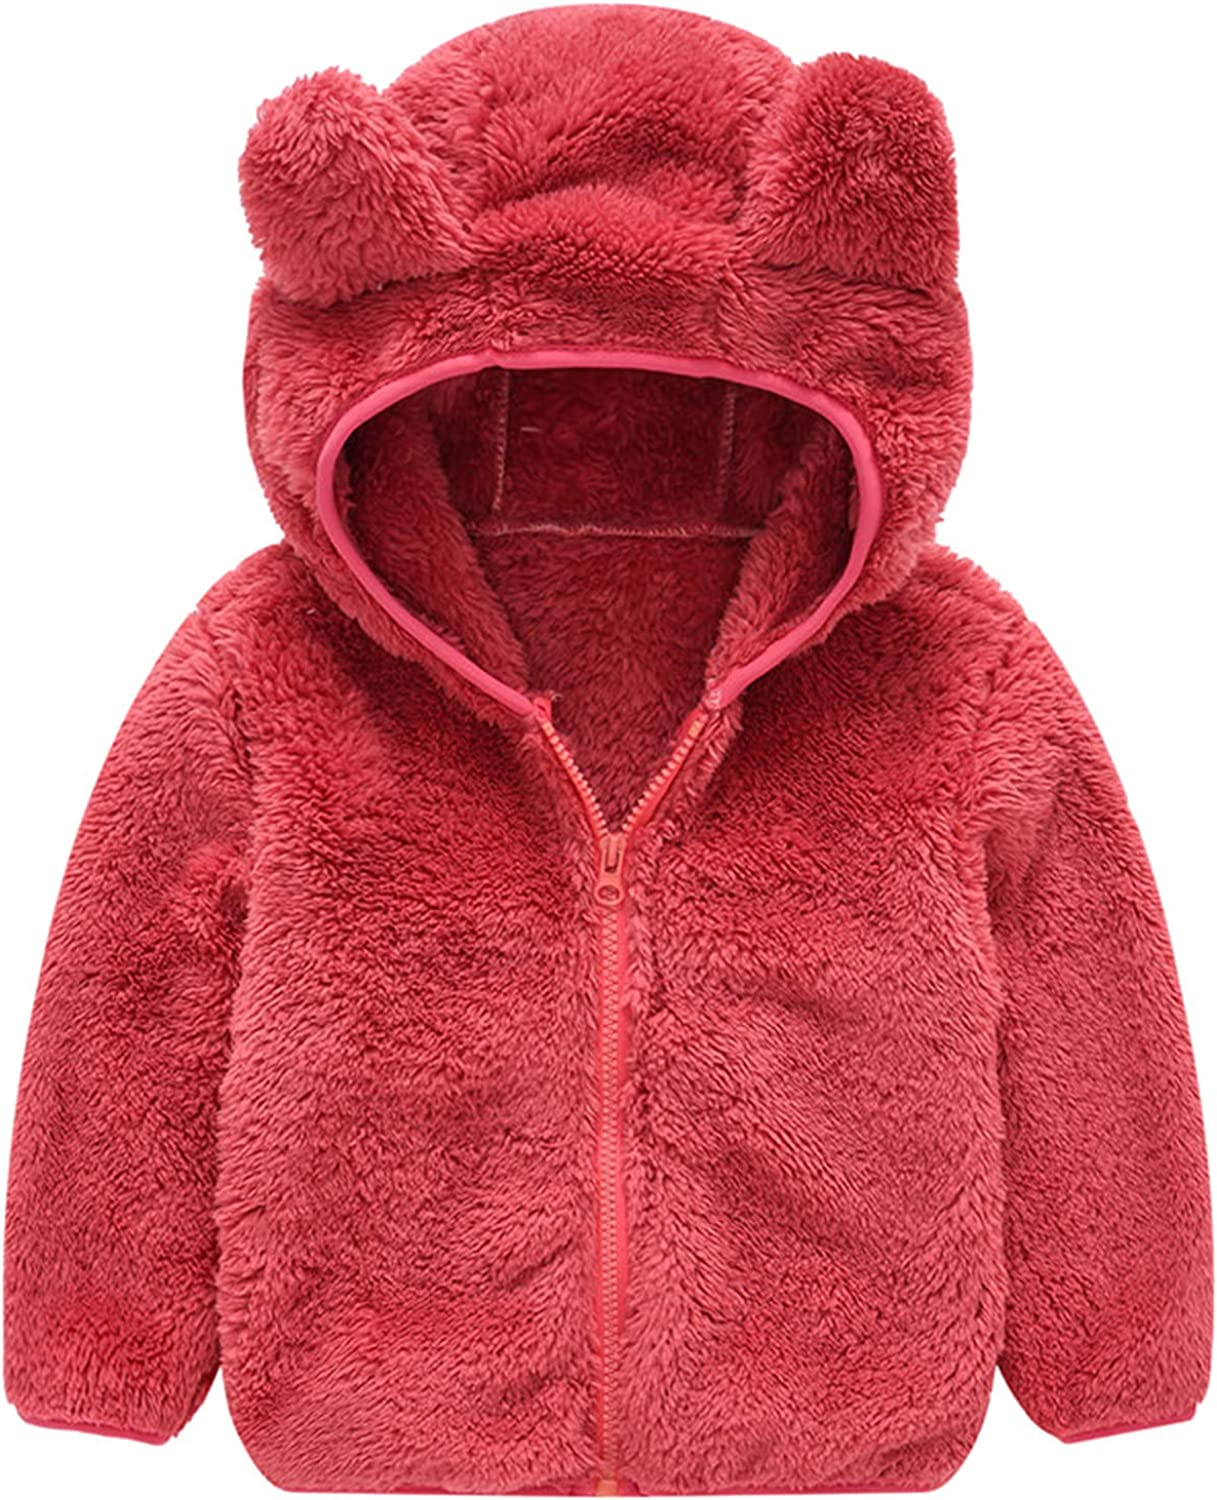 Baby Kids Year-end gift Boys Girls Fleece Full Zip Ears Up So At the price Hoodie with Bear